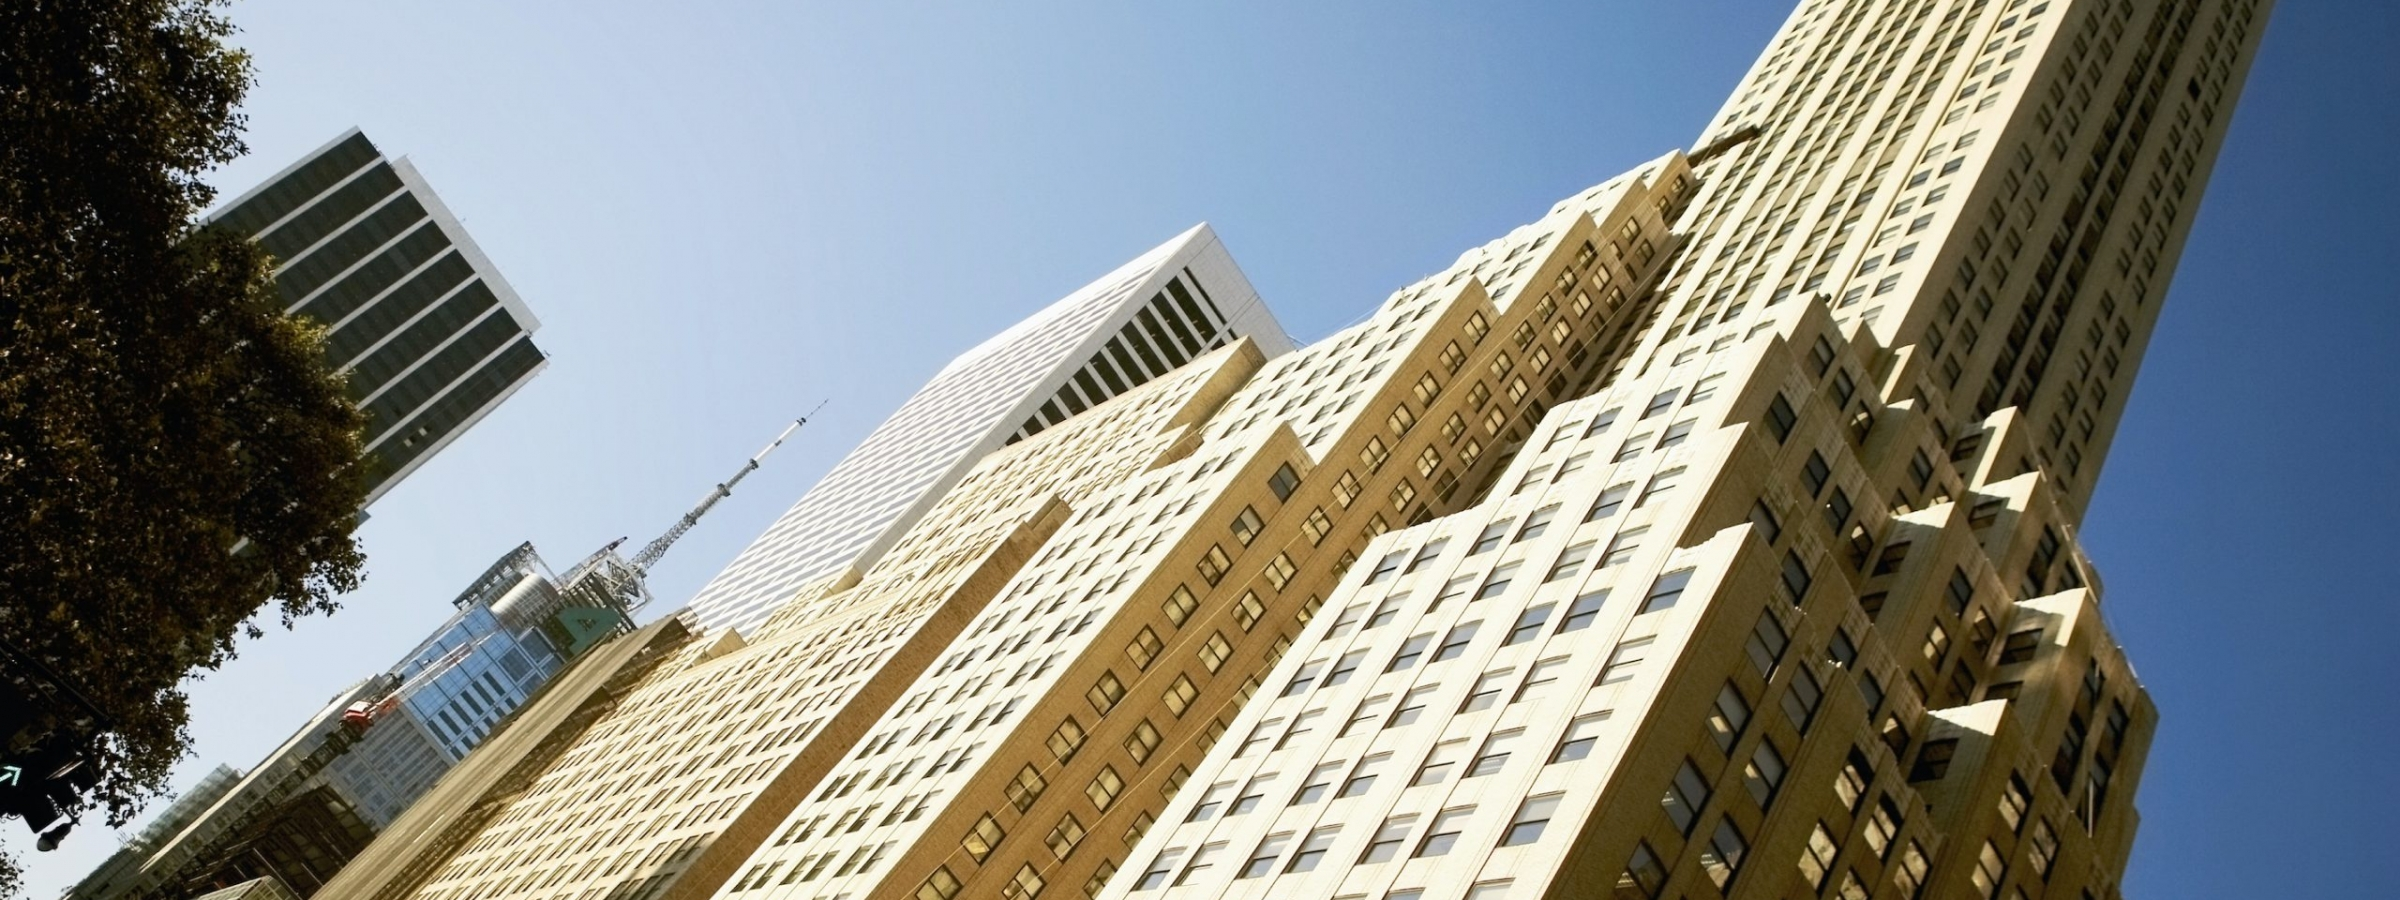 Macklowe Partners with Infinity Drain on One Wall Street Redevelopment